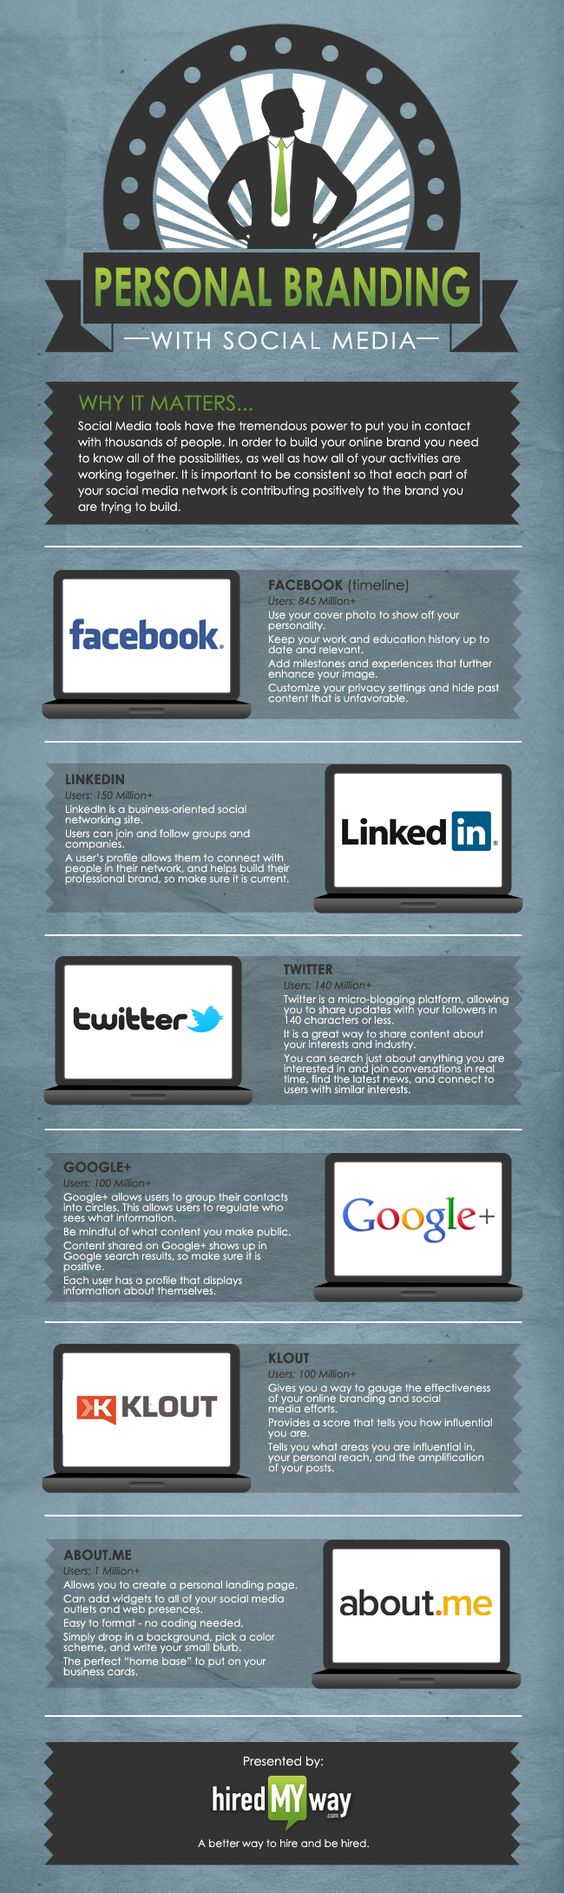 Infographic on Personal Branding with Social Media - includes Facebook, LinkedIn, Twitter, Google+, Klout and About.Me branding tips.